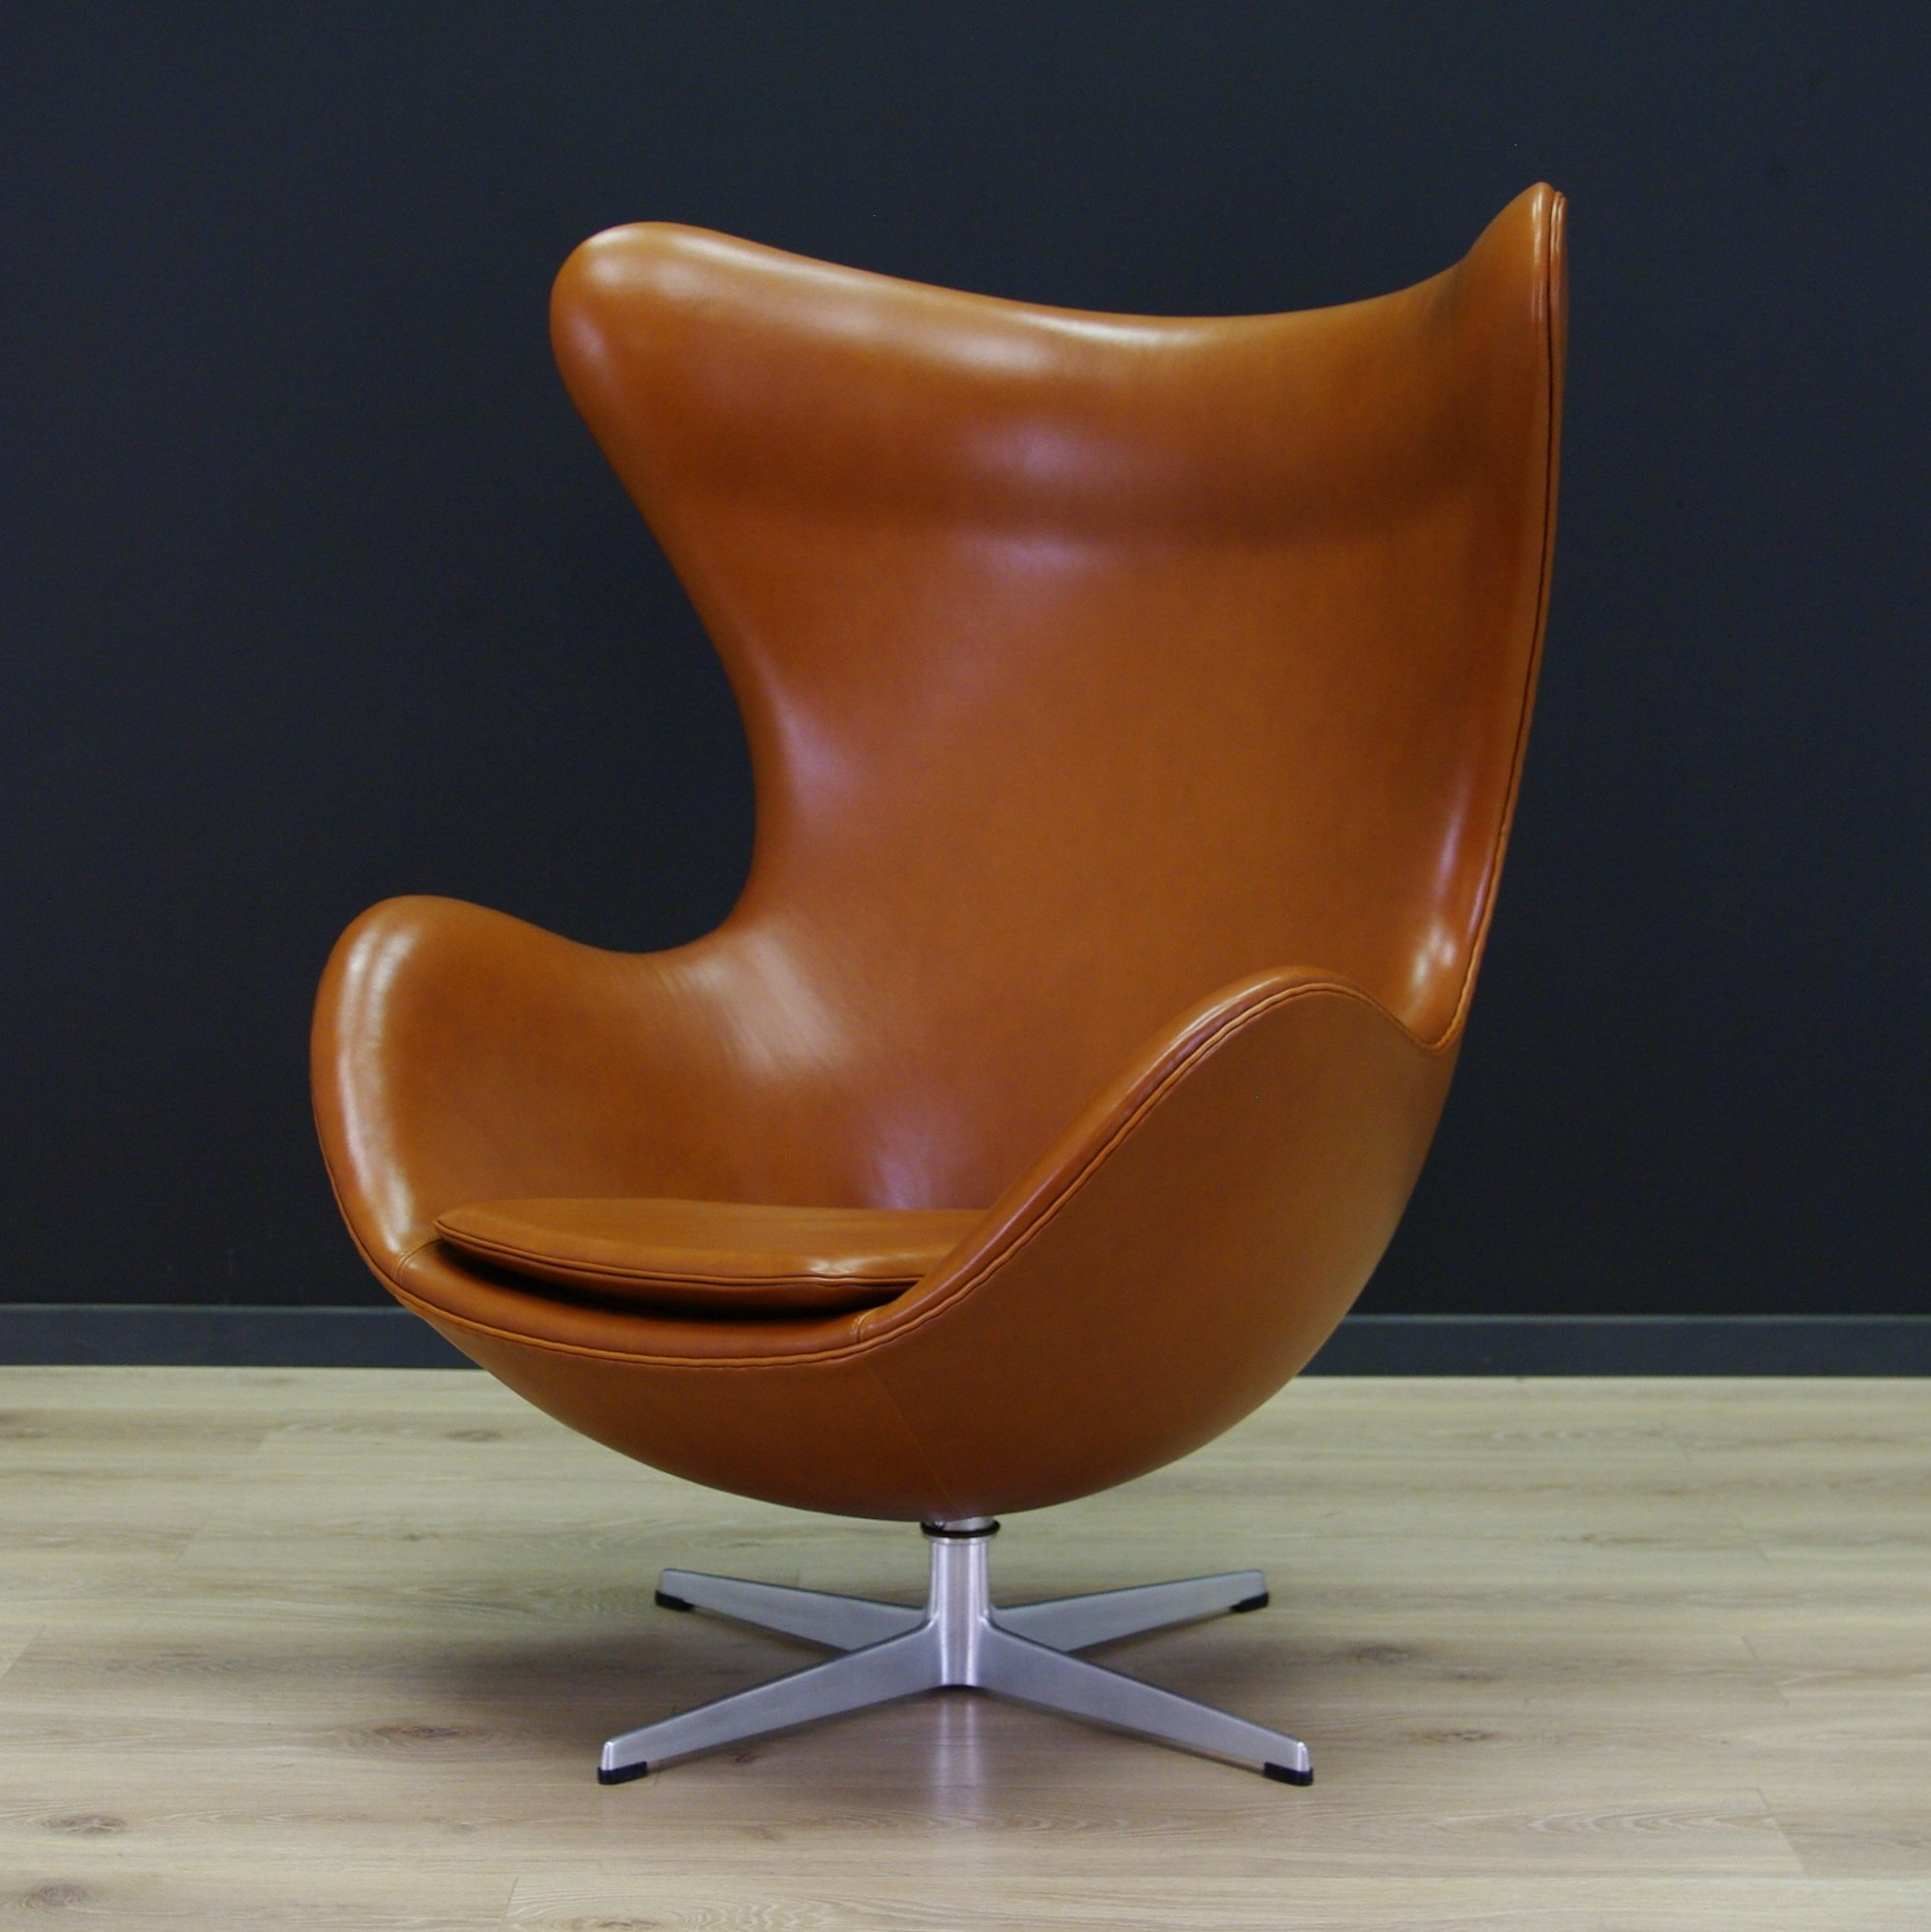 3316 The Egg Lounge Chair From The Sixties By Arne